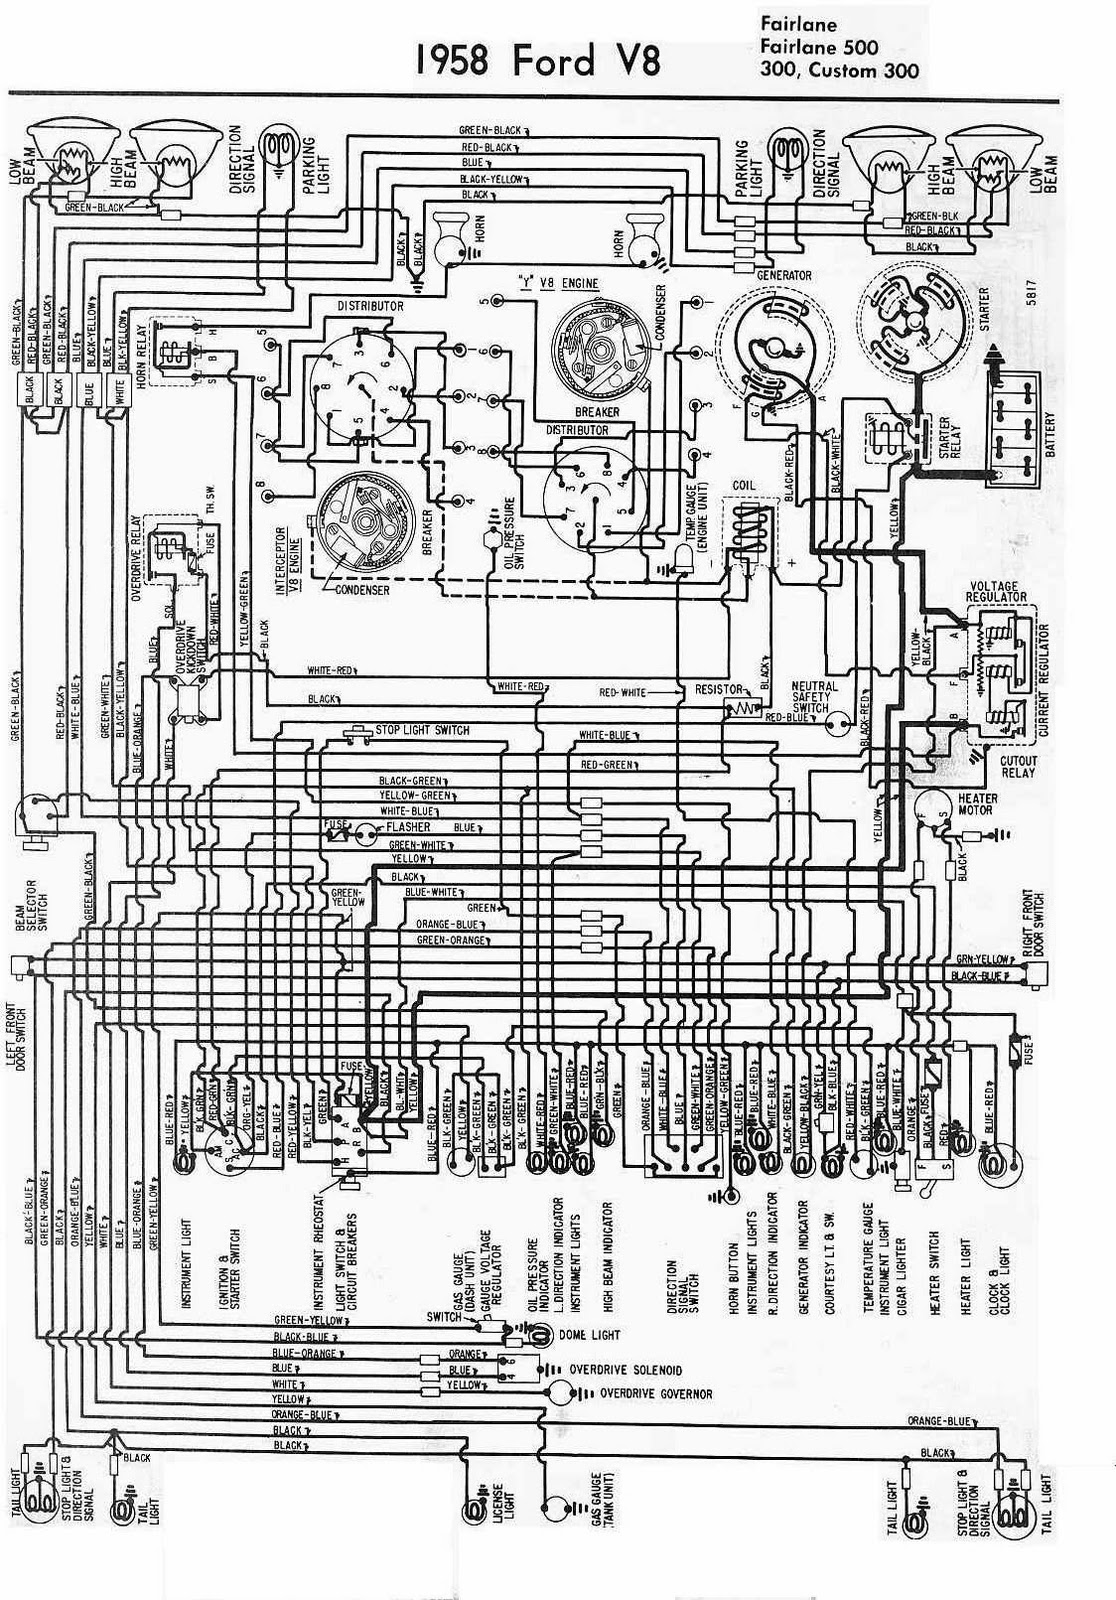 hight resolution of 1955 ford wiring schematic wiring diagram blog 1955 ford wiring diagram free